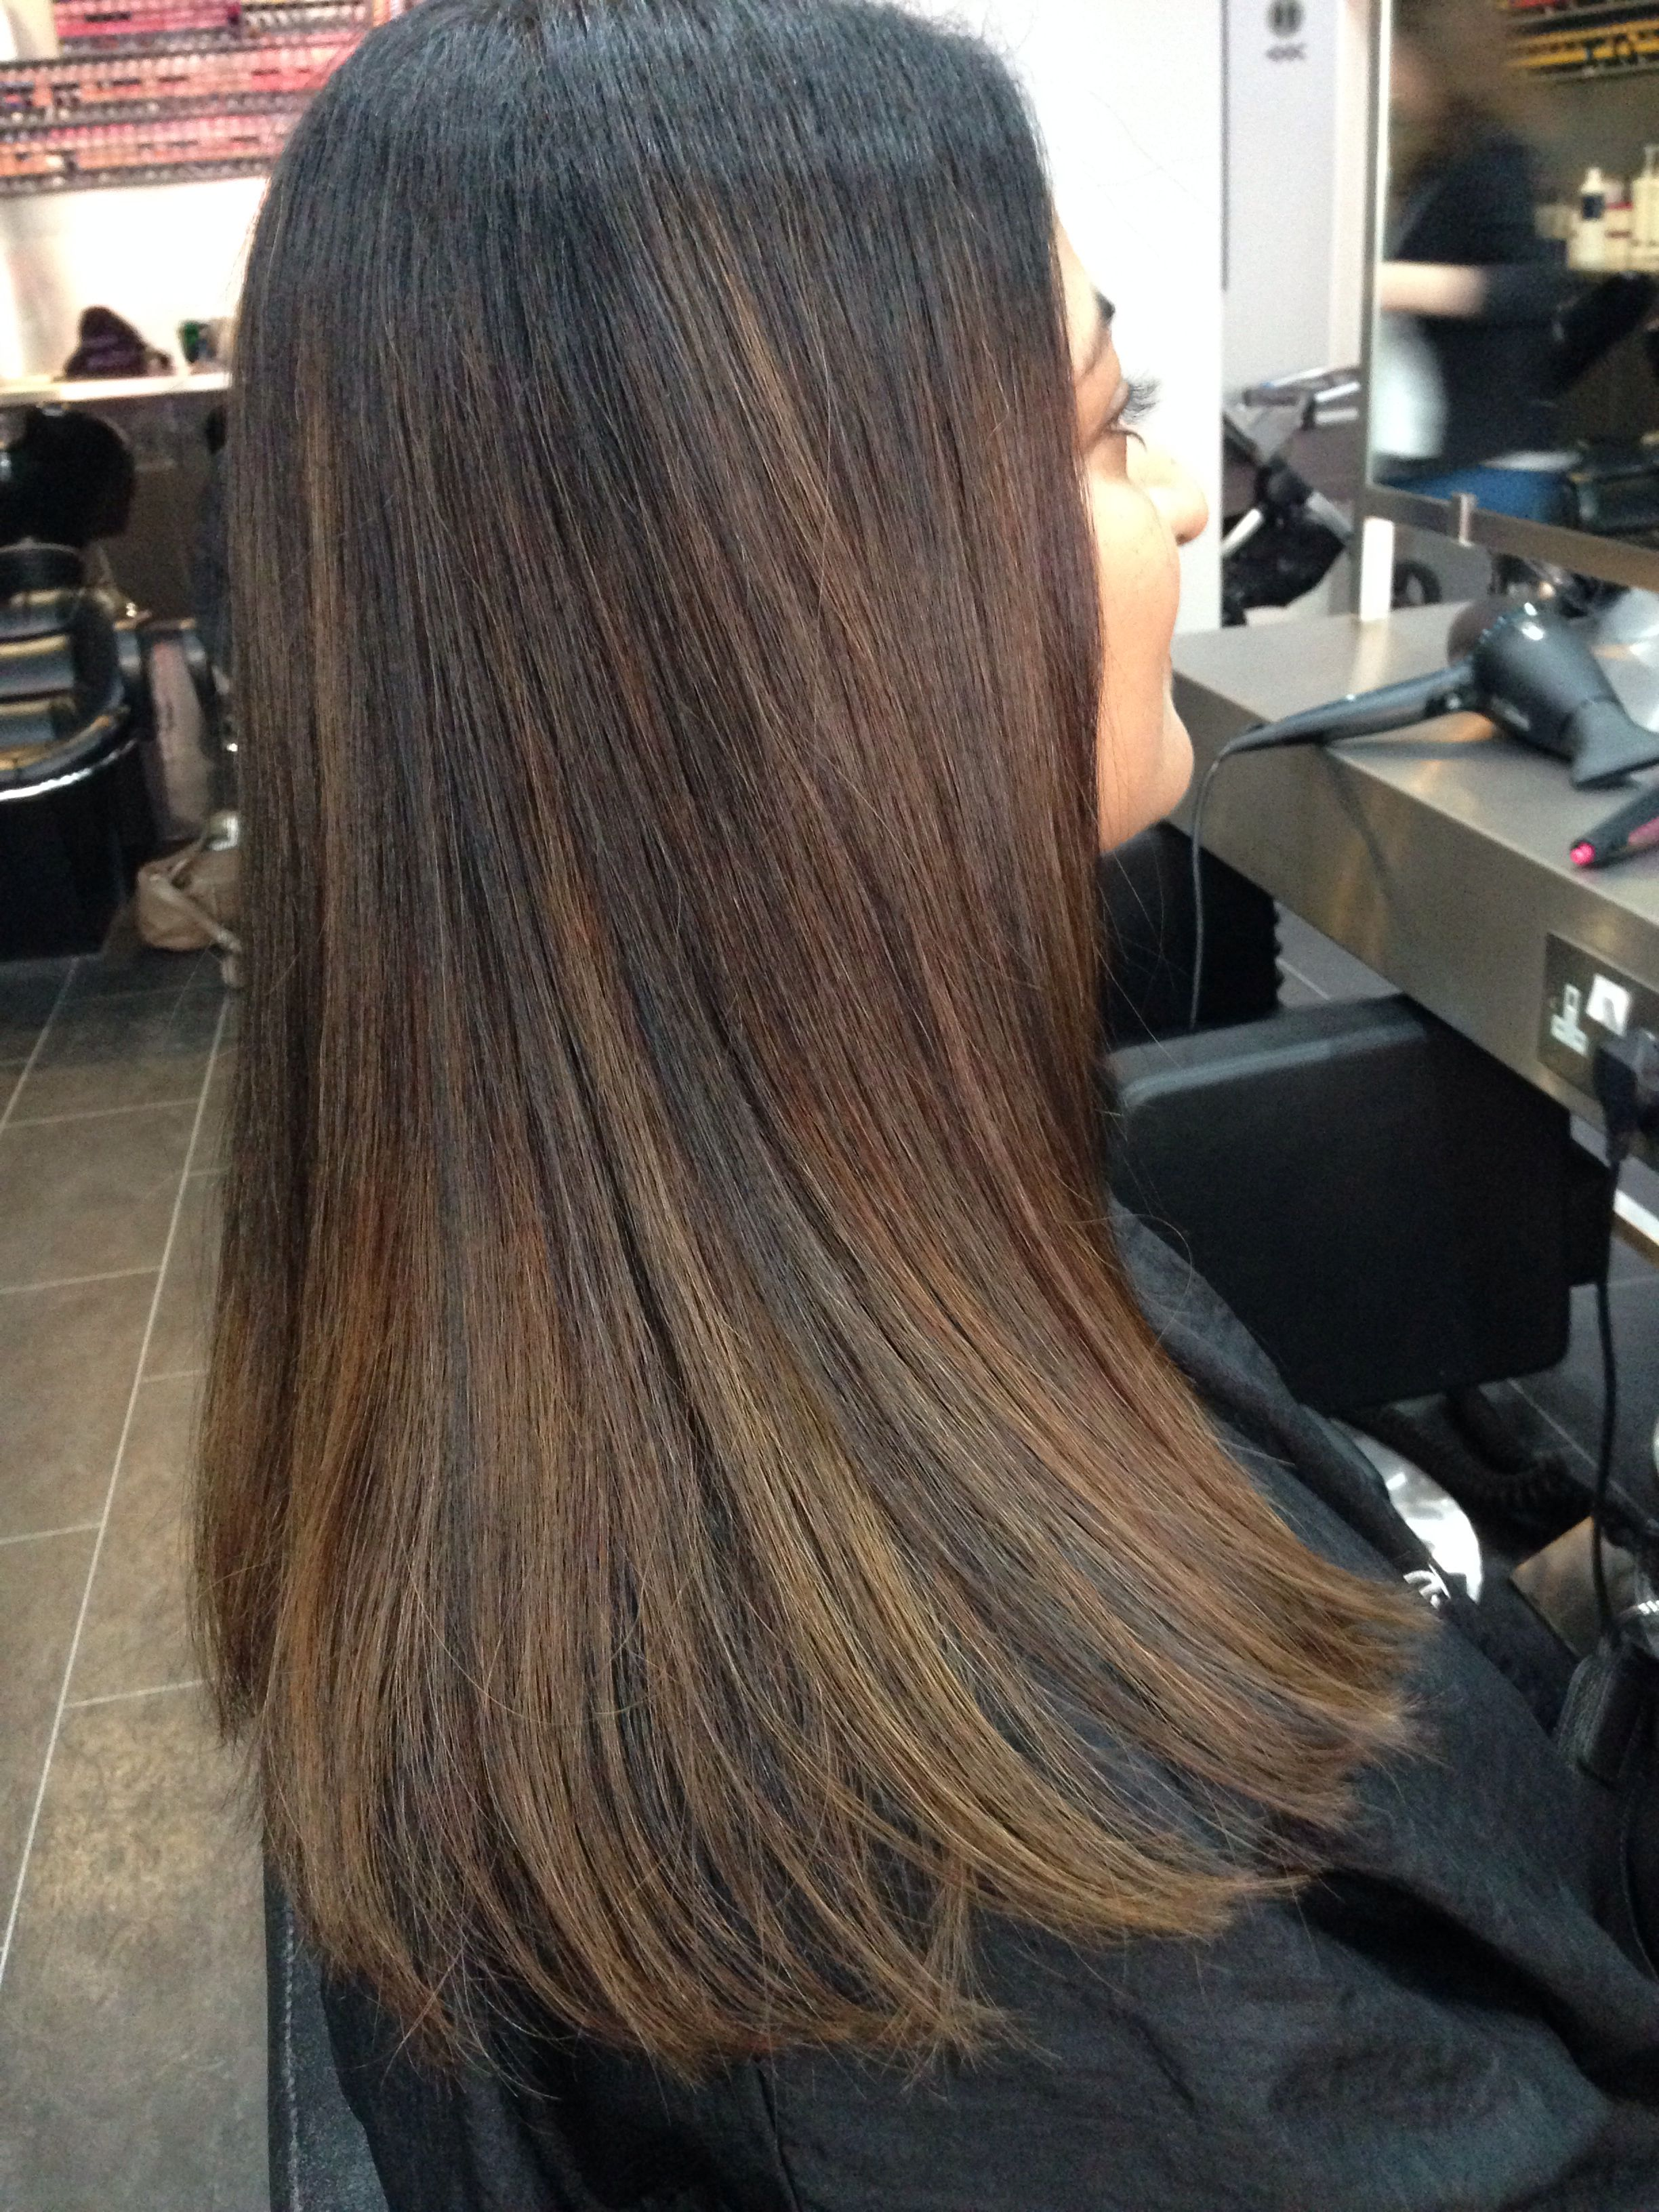 Natural balayage on Indian hair in 2019